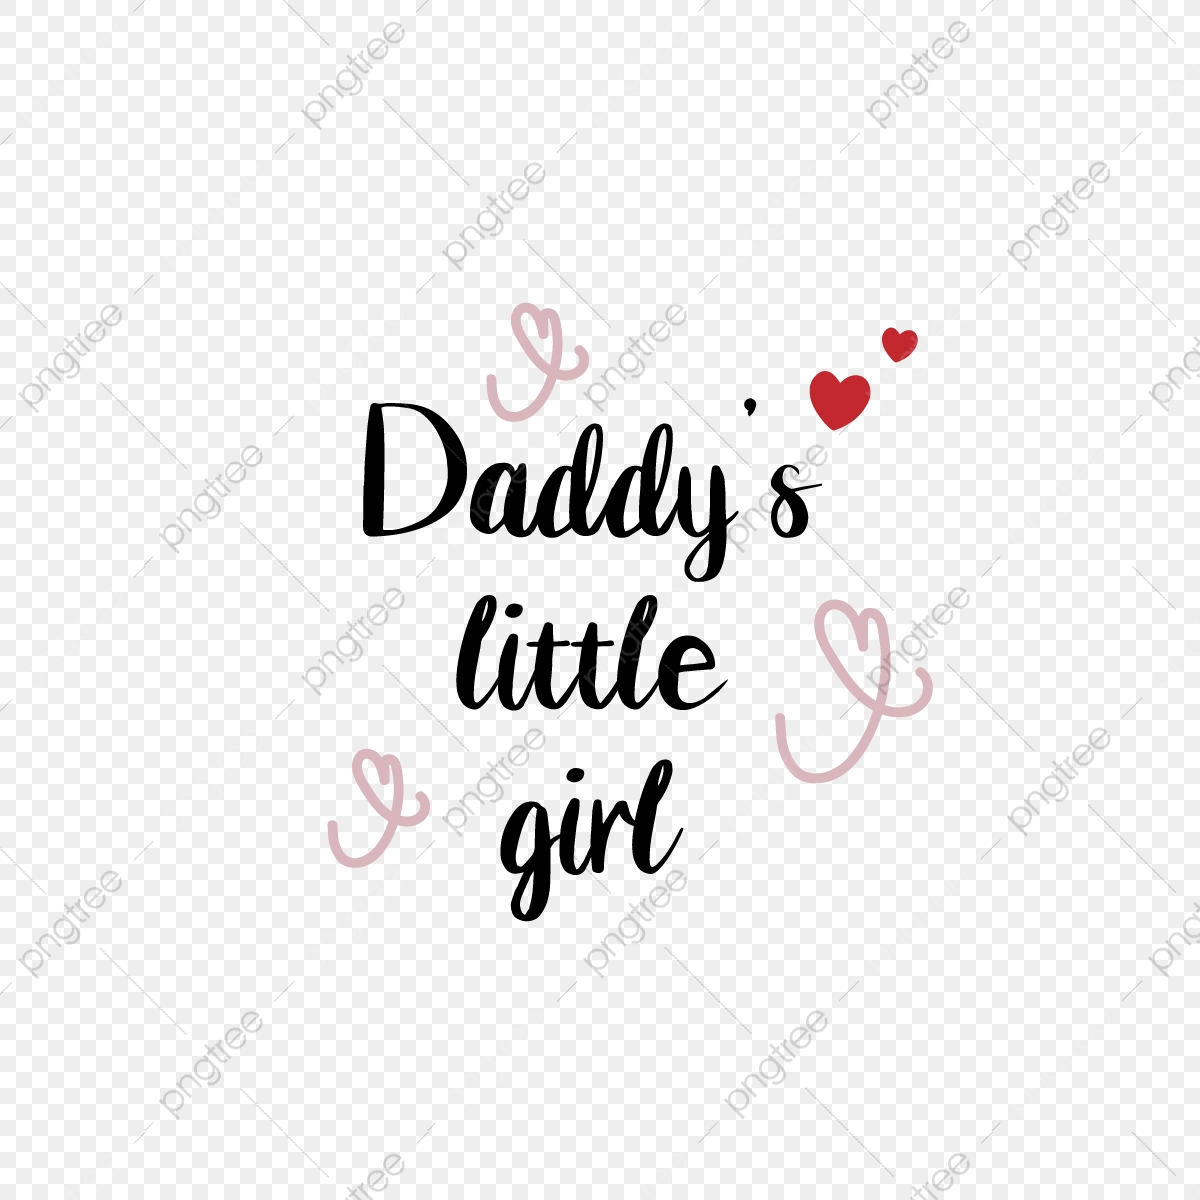 Dad S Little Girl Black Phrase Svg Font Effect Eps For Free Download